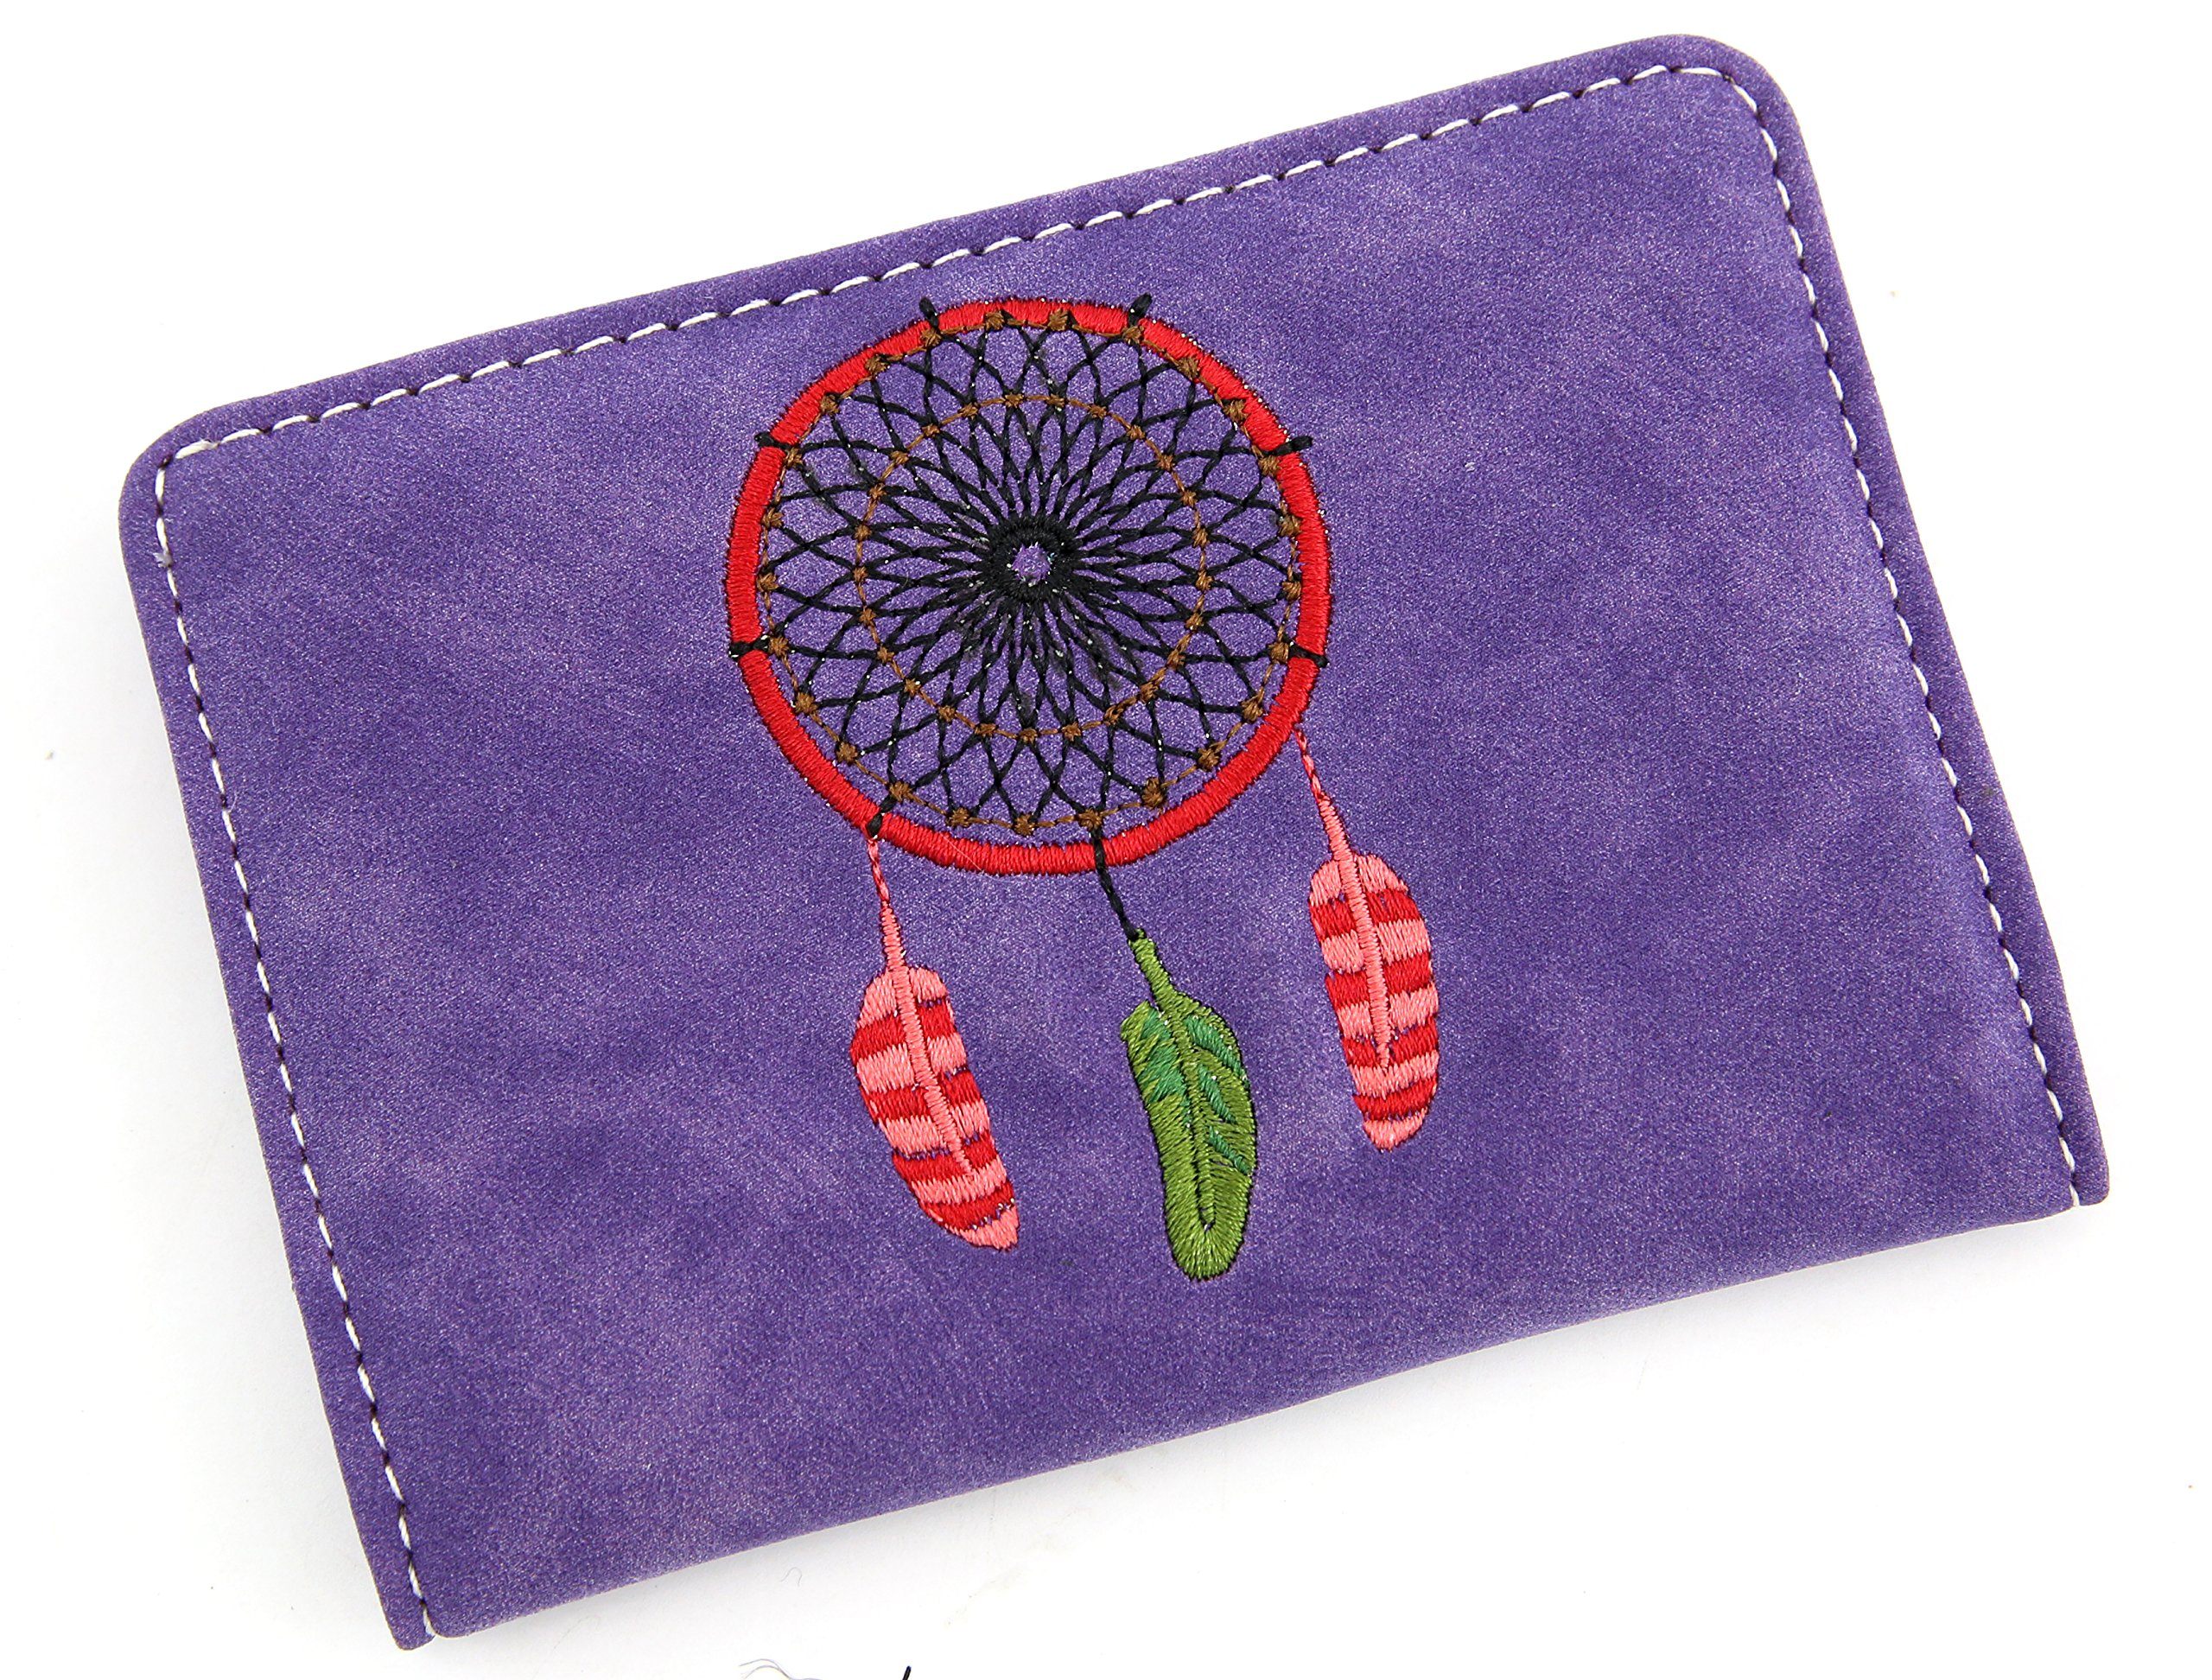 Travel Passport Holder Dream Catcher Cover Slim Id Card Case for Men & Women Travel Wallet Securely Holds Business Cards Credit Cards (Purple)